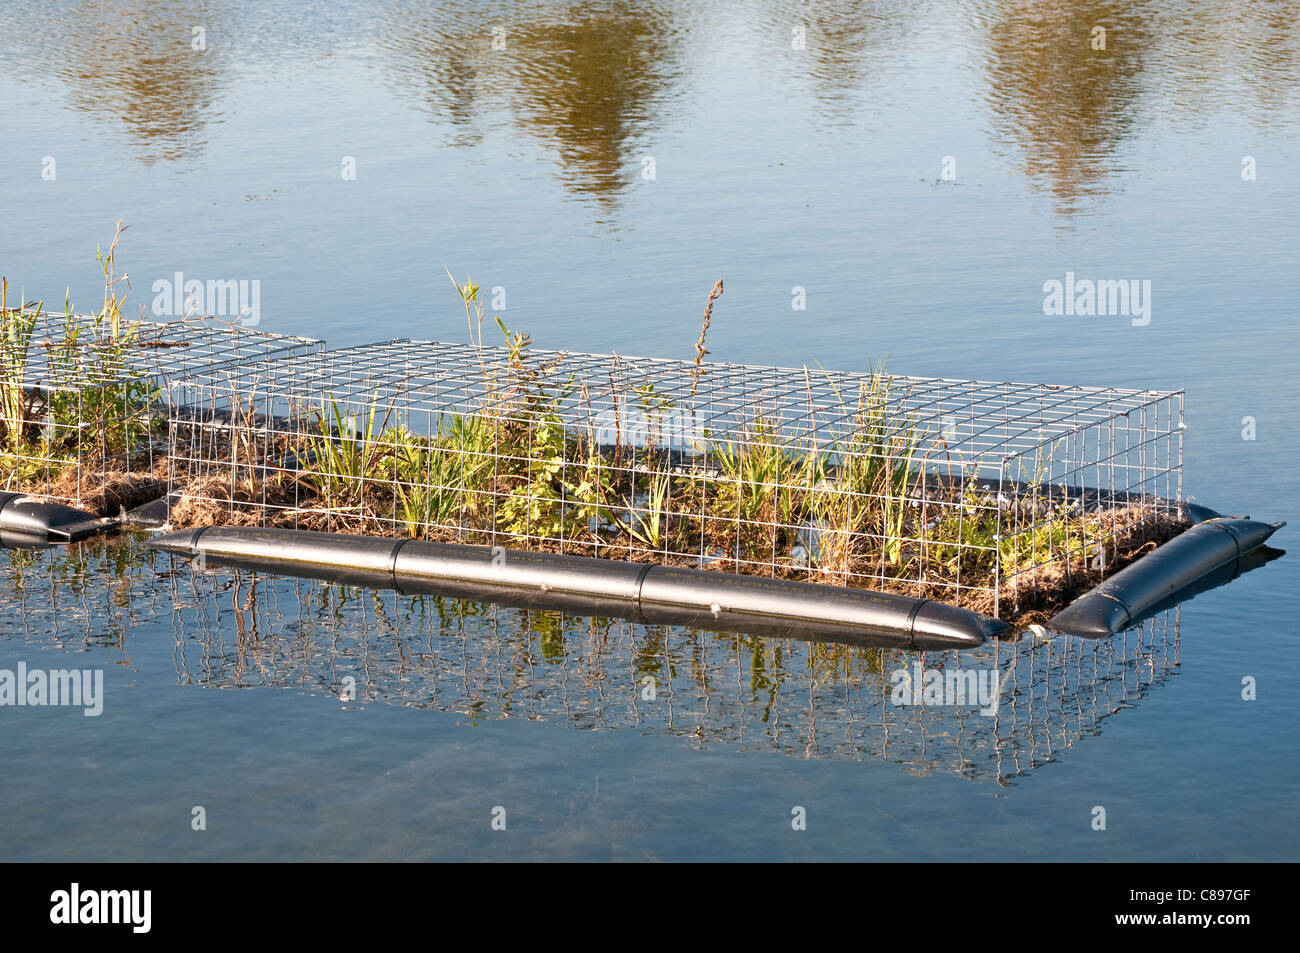 Floating Plants Protected By Chicken Wire On Long Water Home Park Surrey England United Kingdom